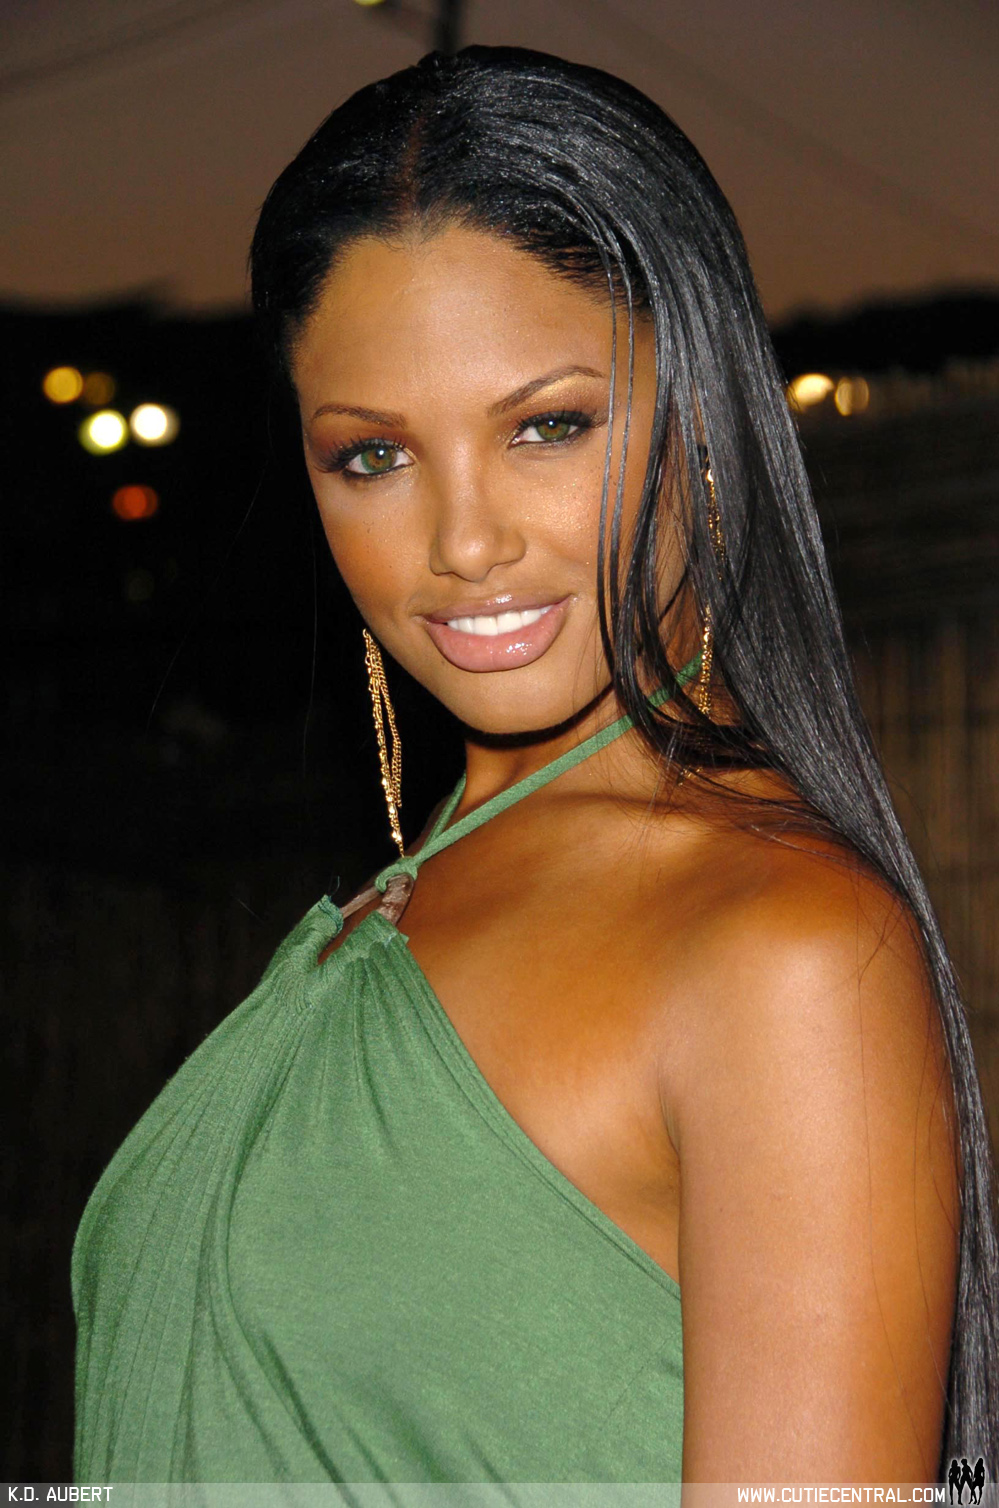 K.D. Aubert hot photo